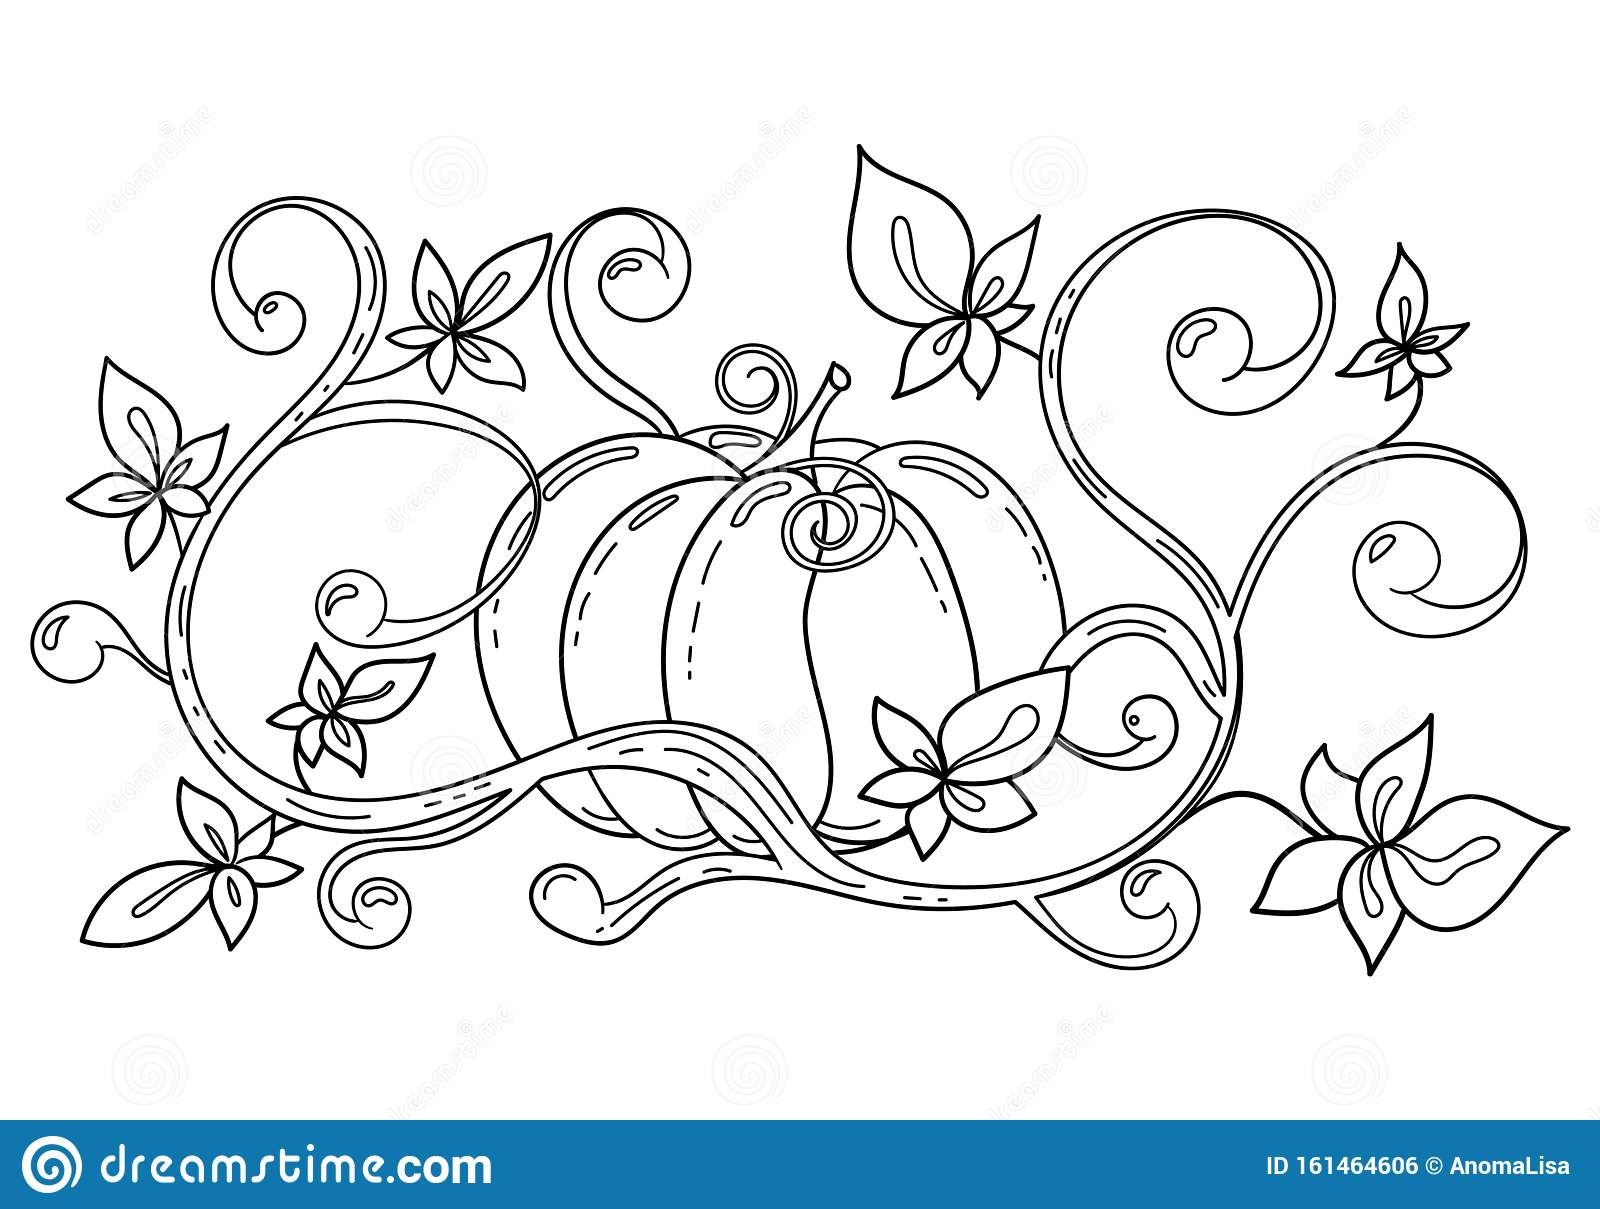 Coloring Page With Autumn Halloween Pumpkin Stock Vector Illustration Of Flora Childish 161464606